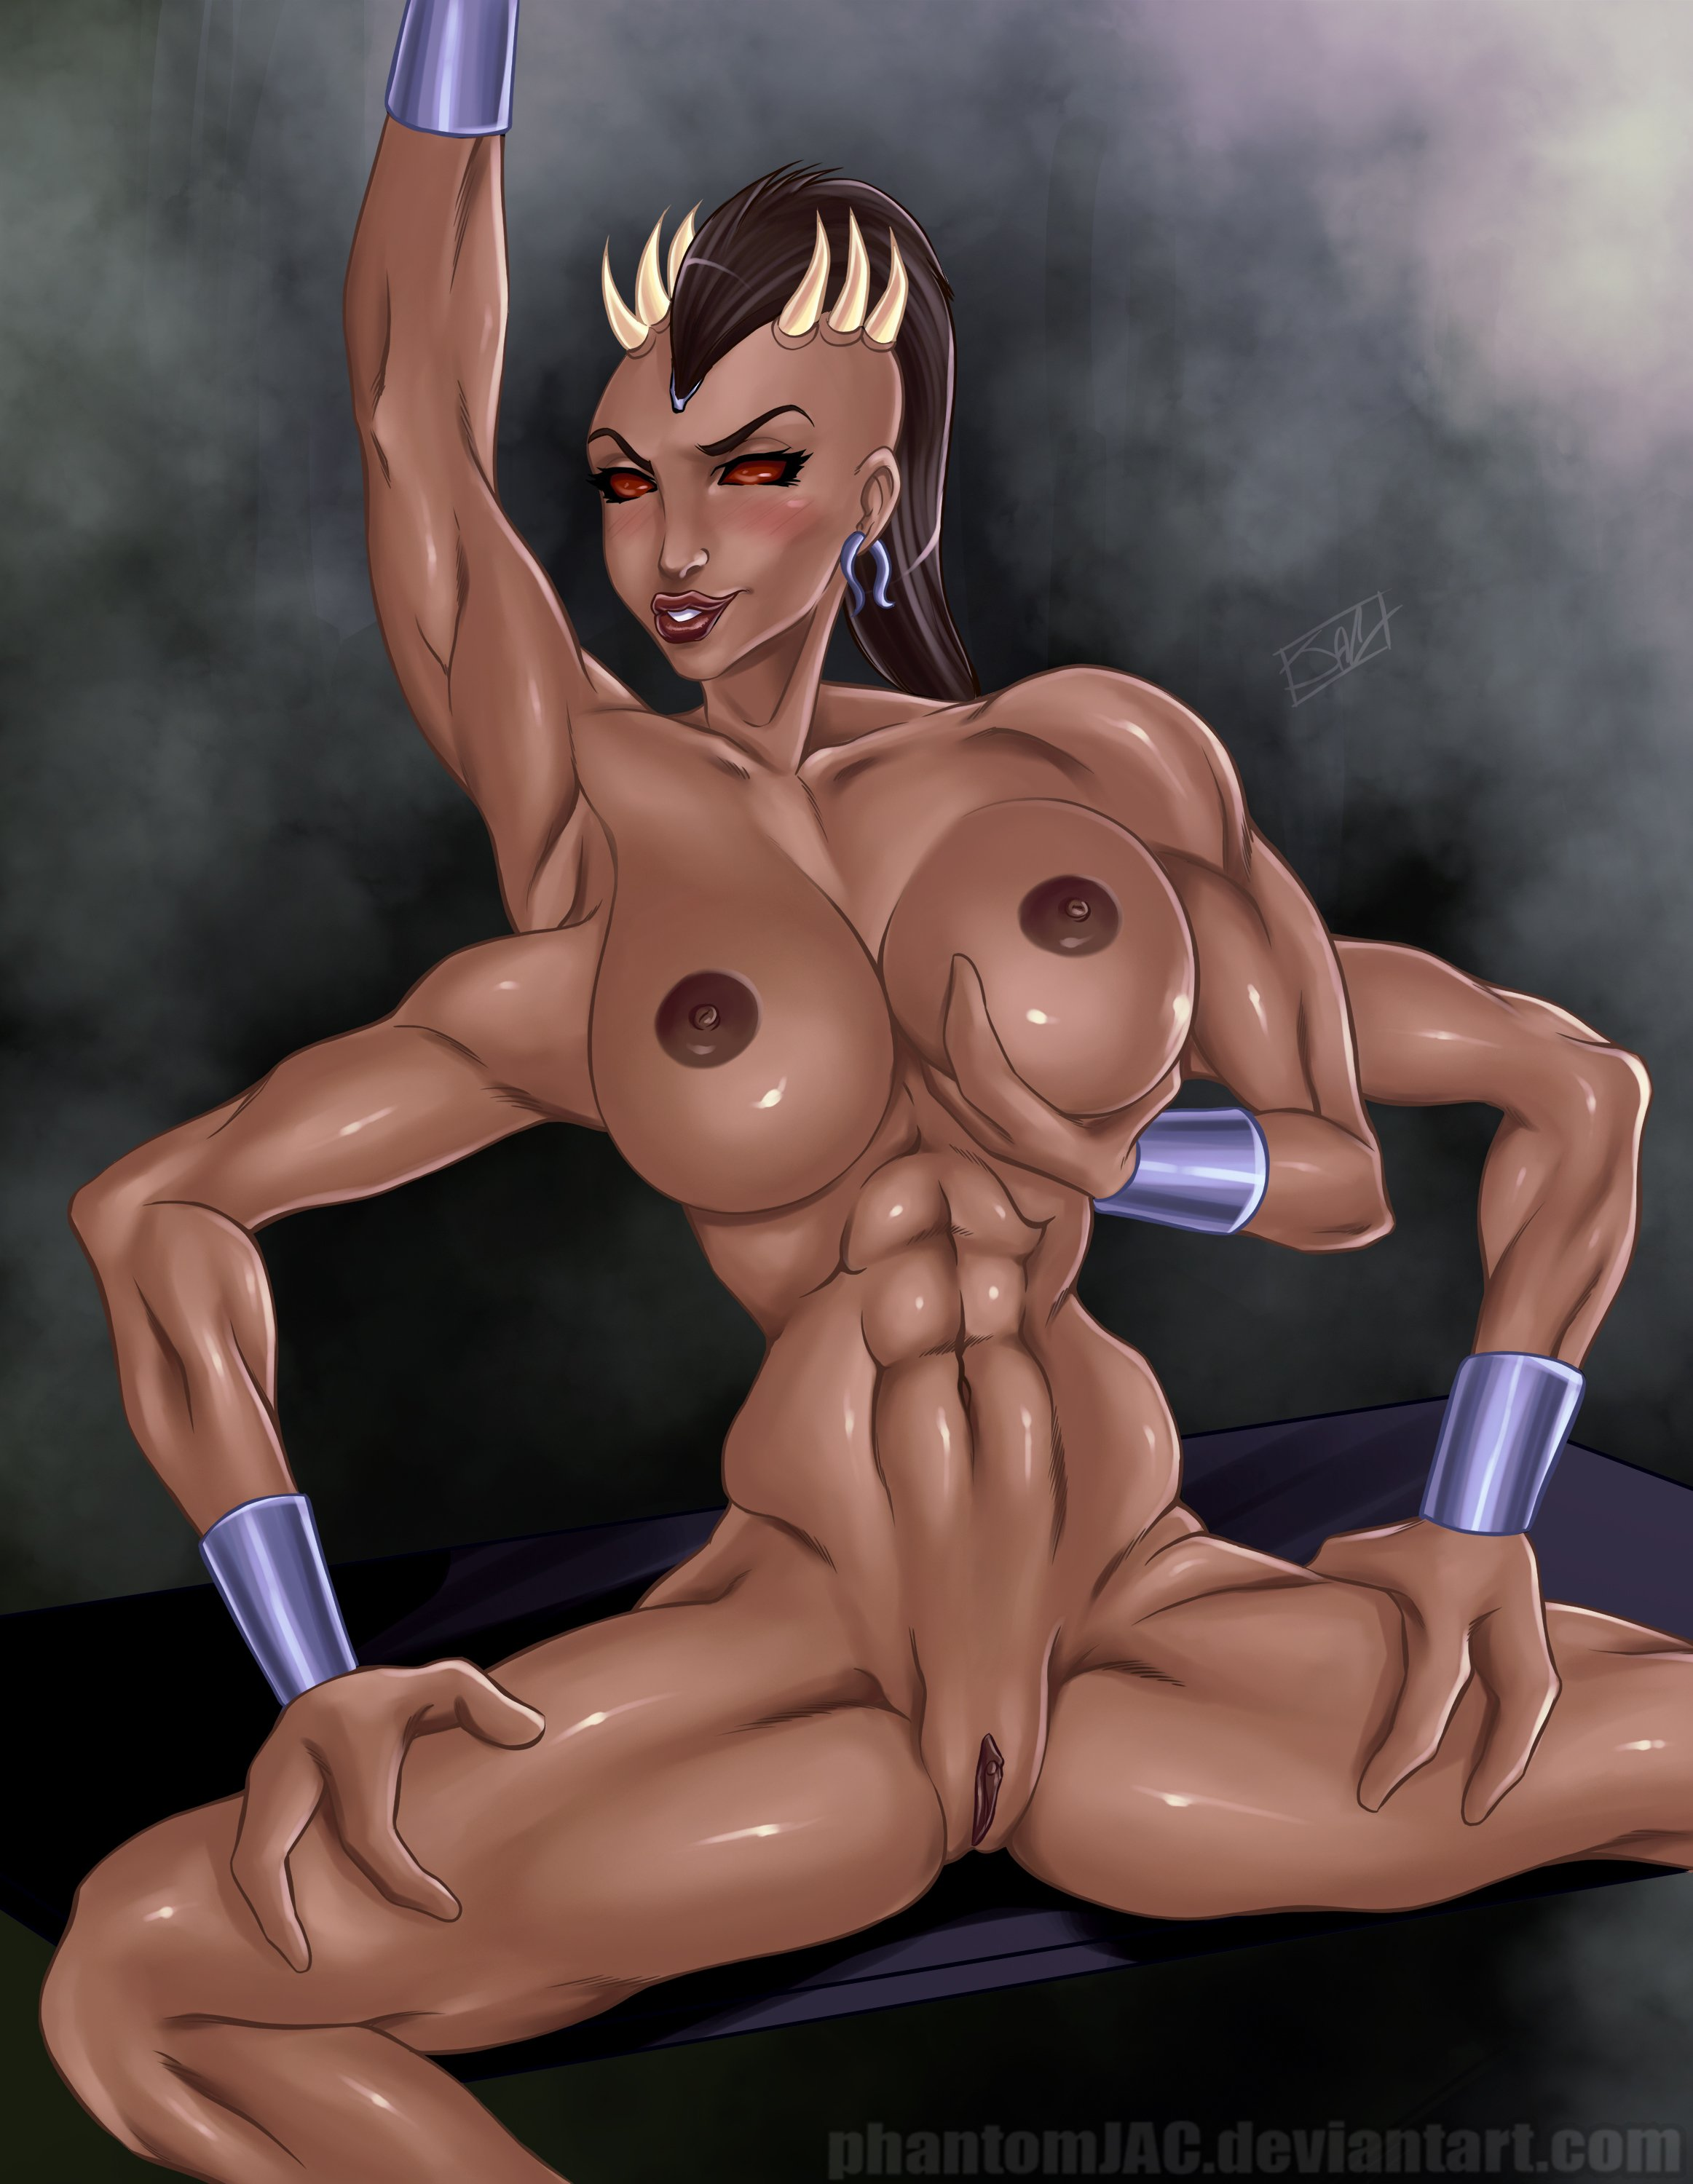 Mortal kombat naked porn hardcore cartoon pic exploited pictures